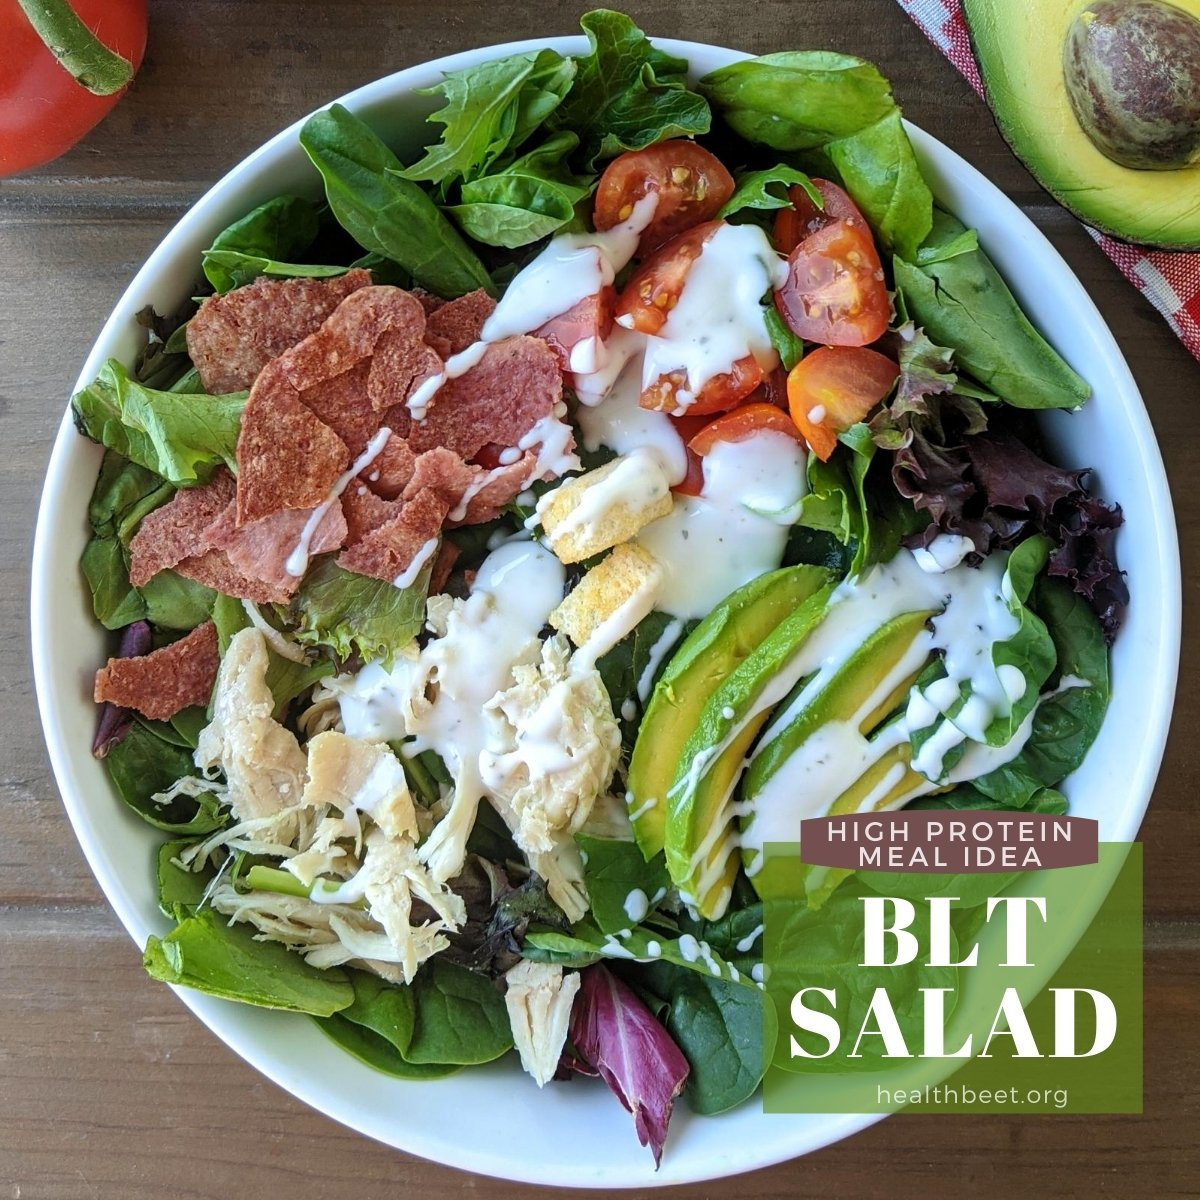 high protein meal idea in just 5 minutes BLT salad